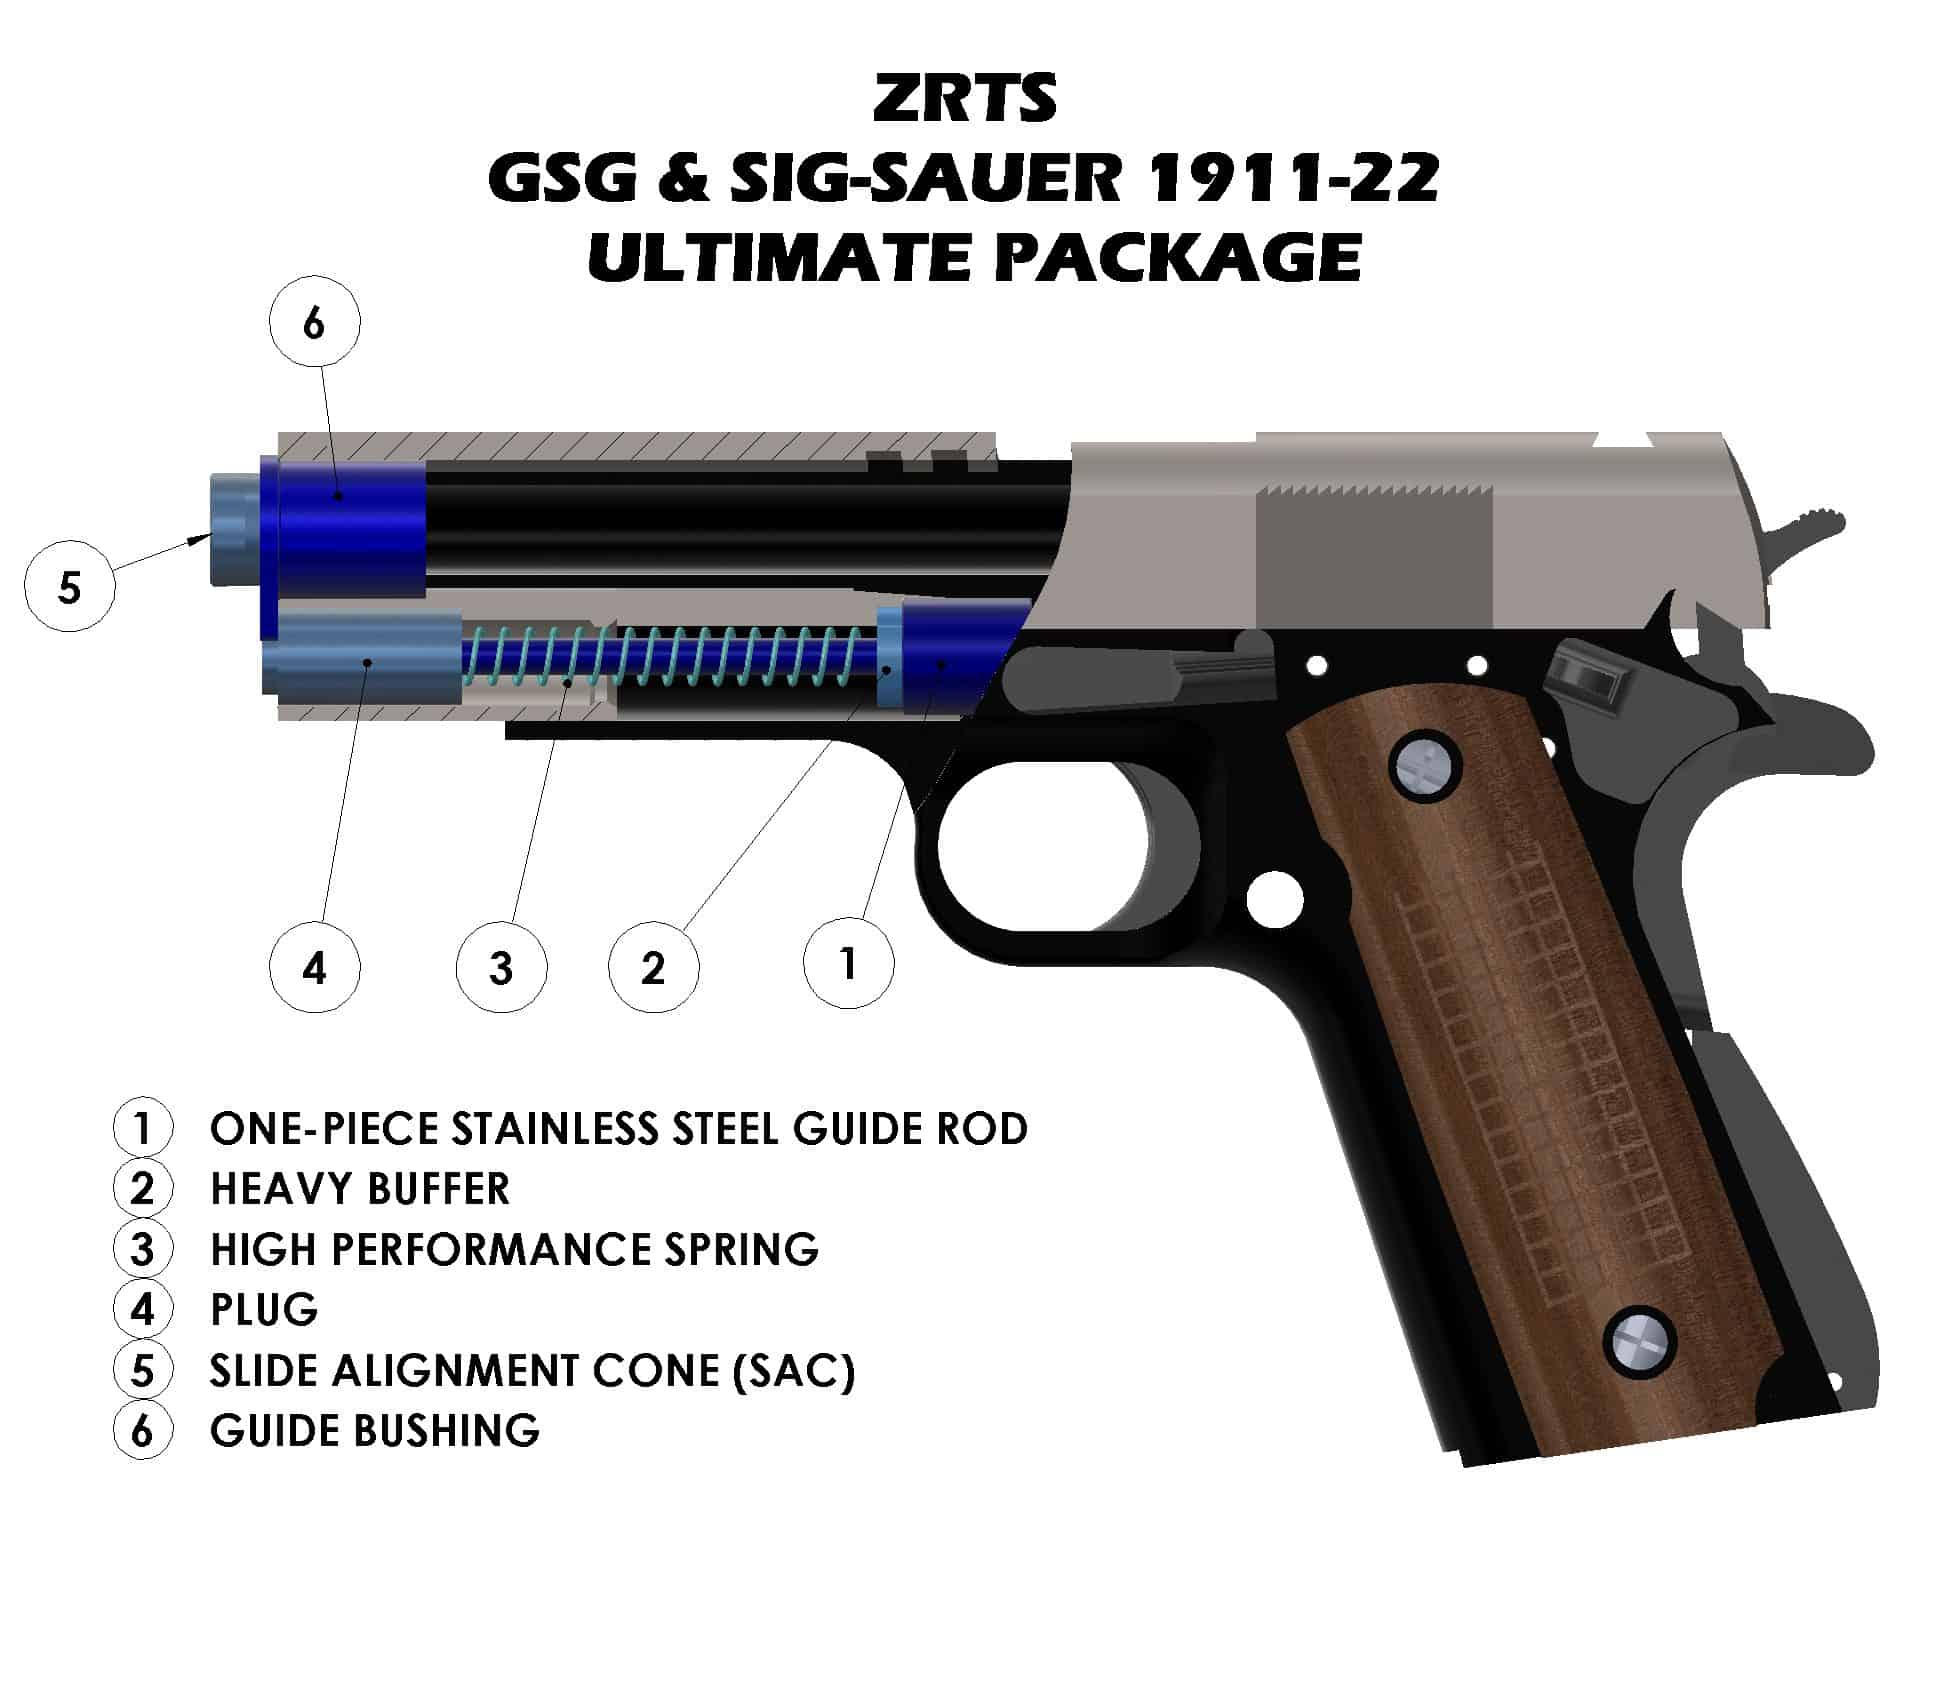 GSG & Sig-Sauer 1911-22 Ultimate Package